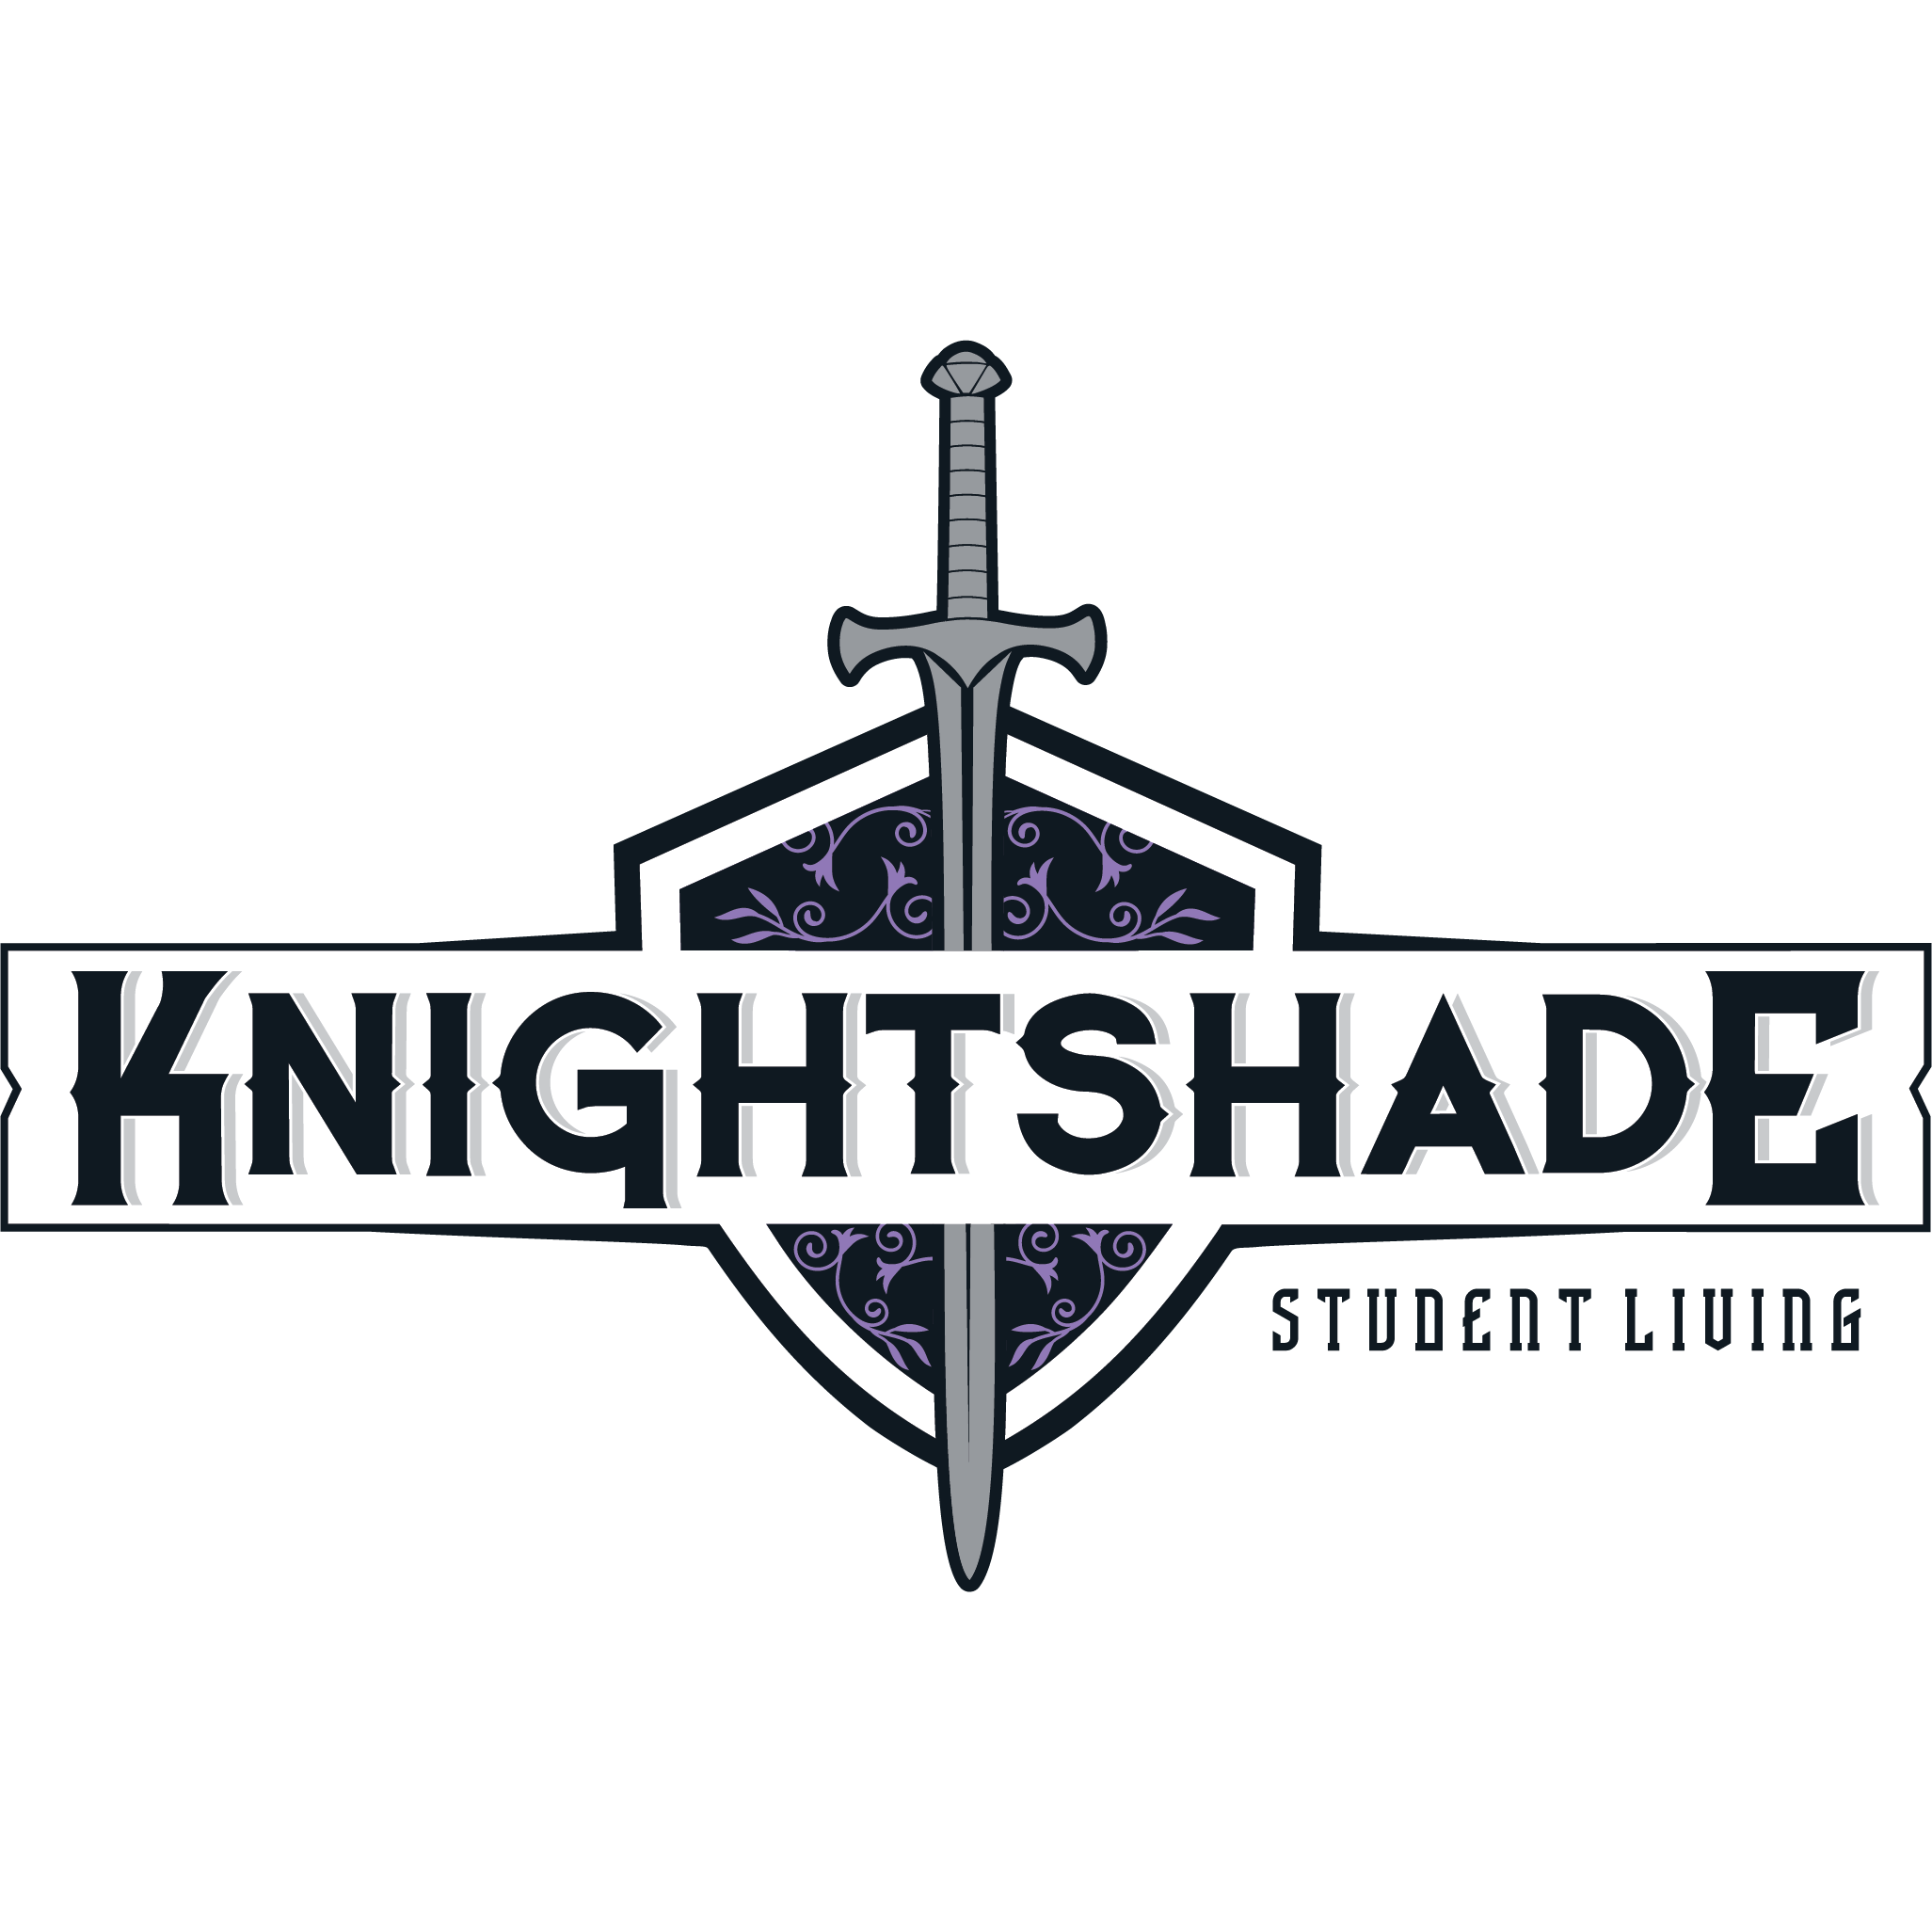 Knightshade Student Living